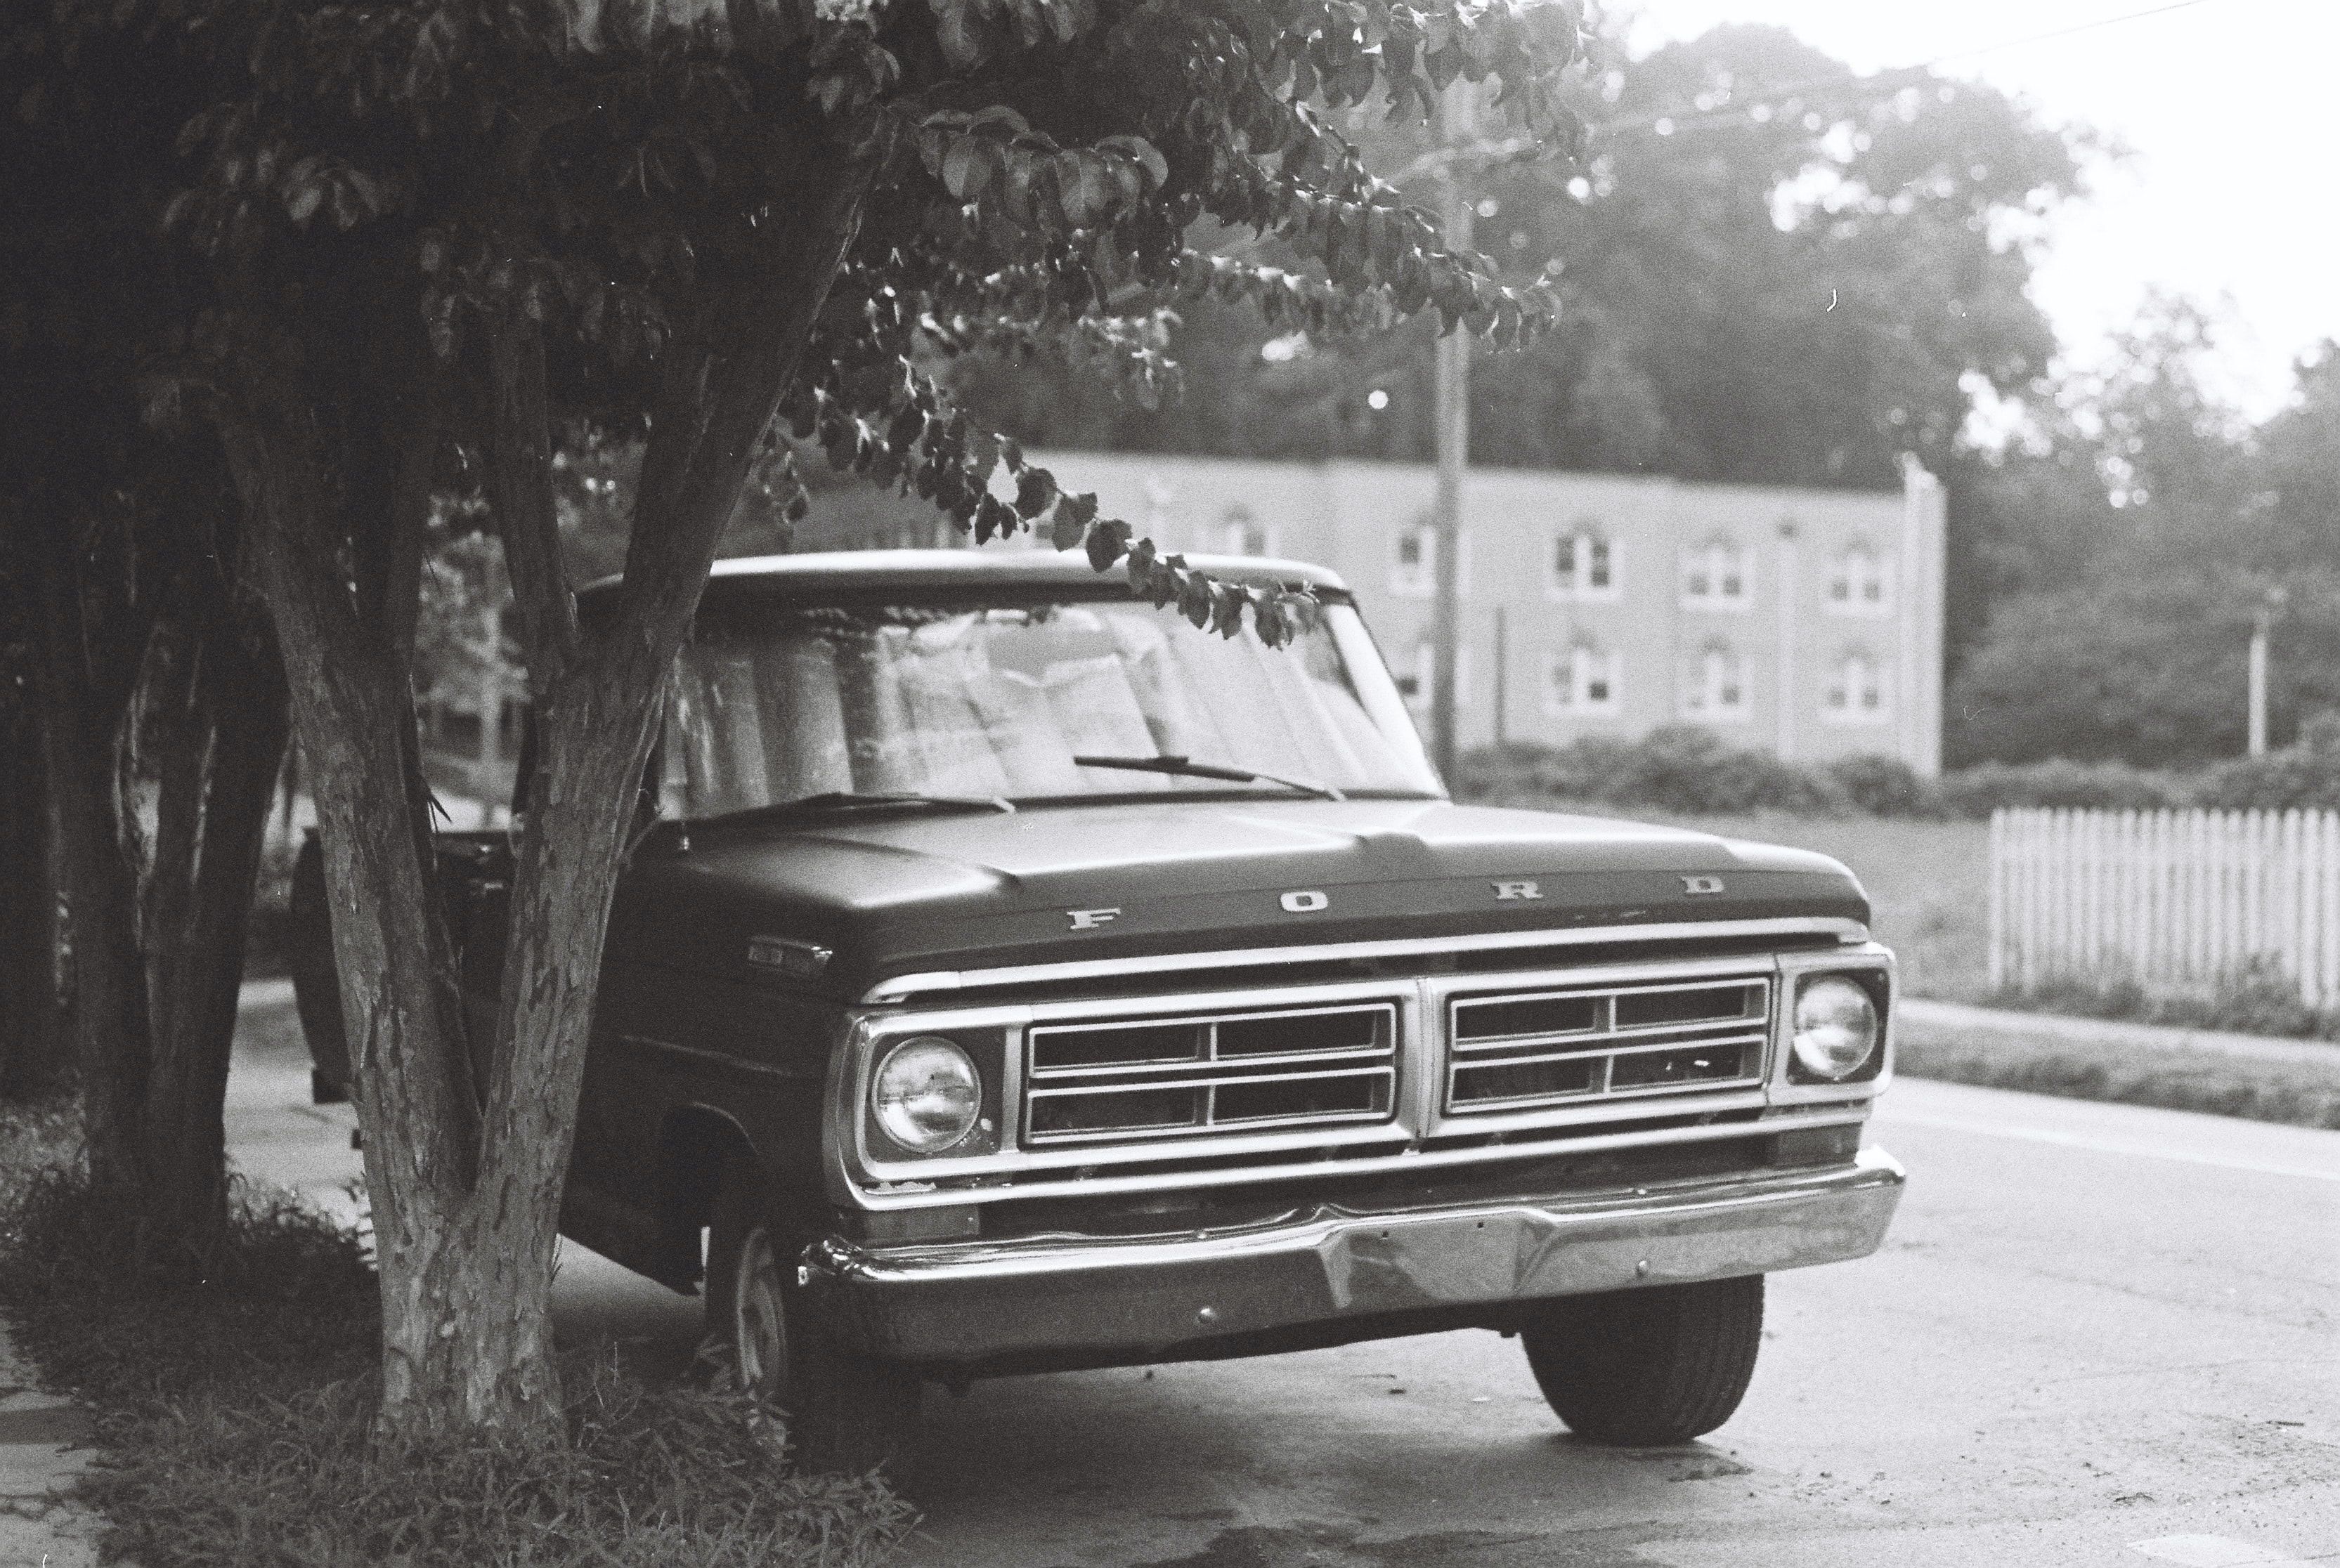 grayscale photography of vehicle near trees